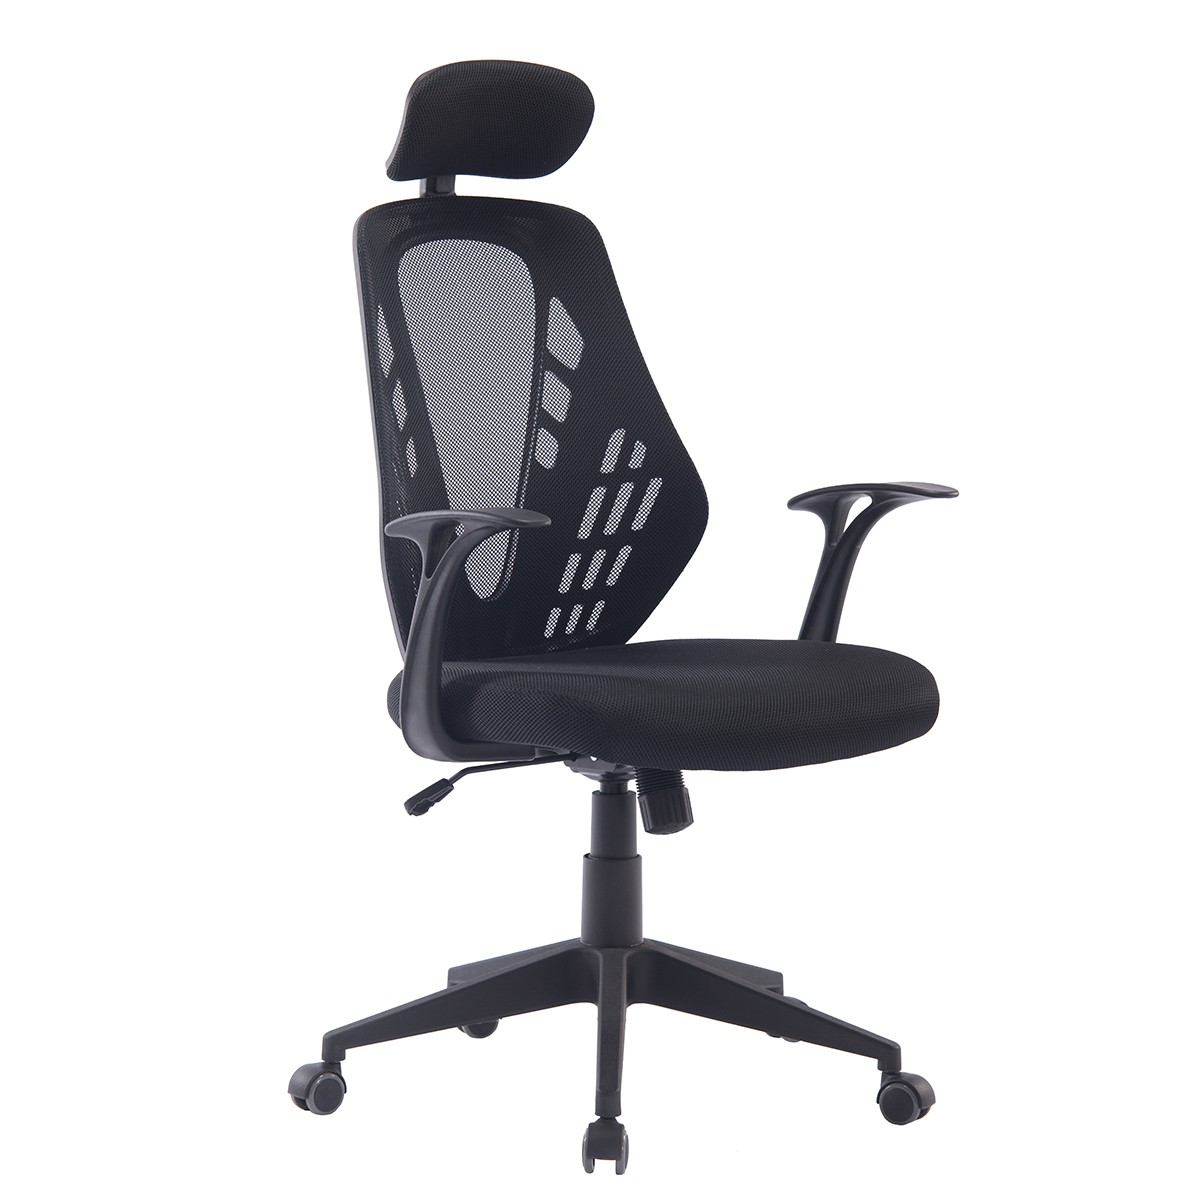 Office Armchair VELDEN, Gas, Rocker, Mesh And Black Fabric